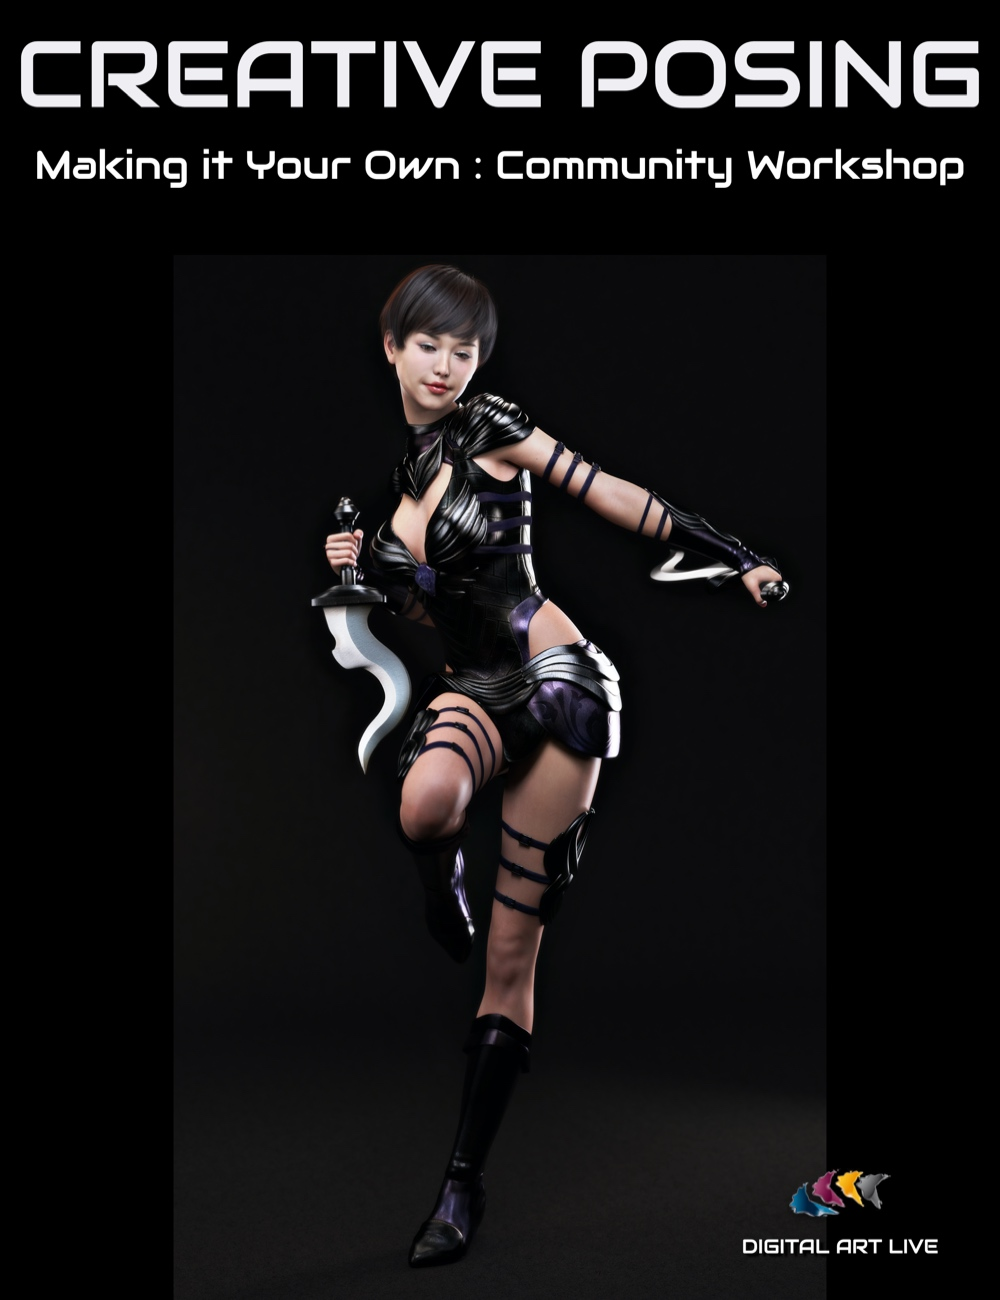 Creative Posing: Making It Your Own by: Digital Art Live, 3D Models by Daz 3D